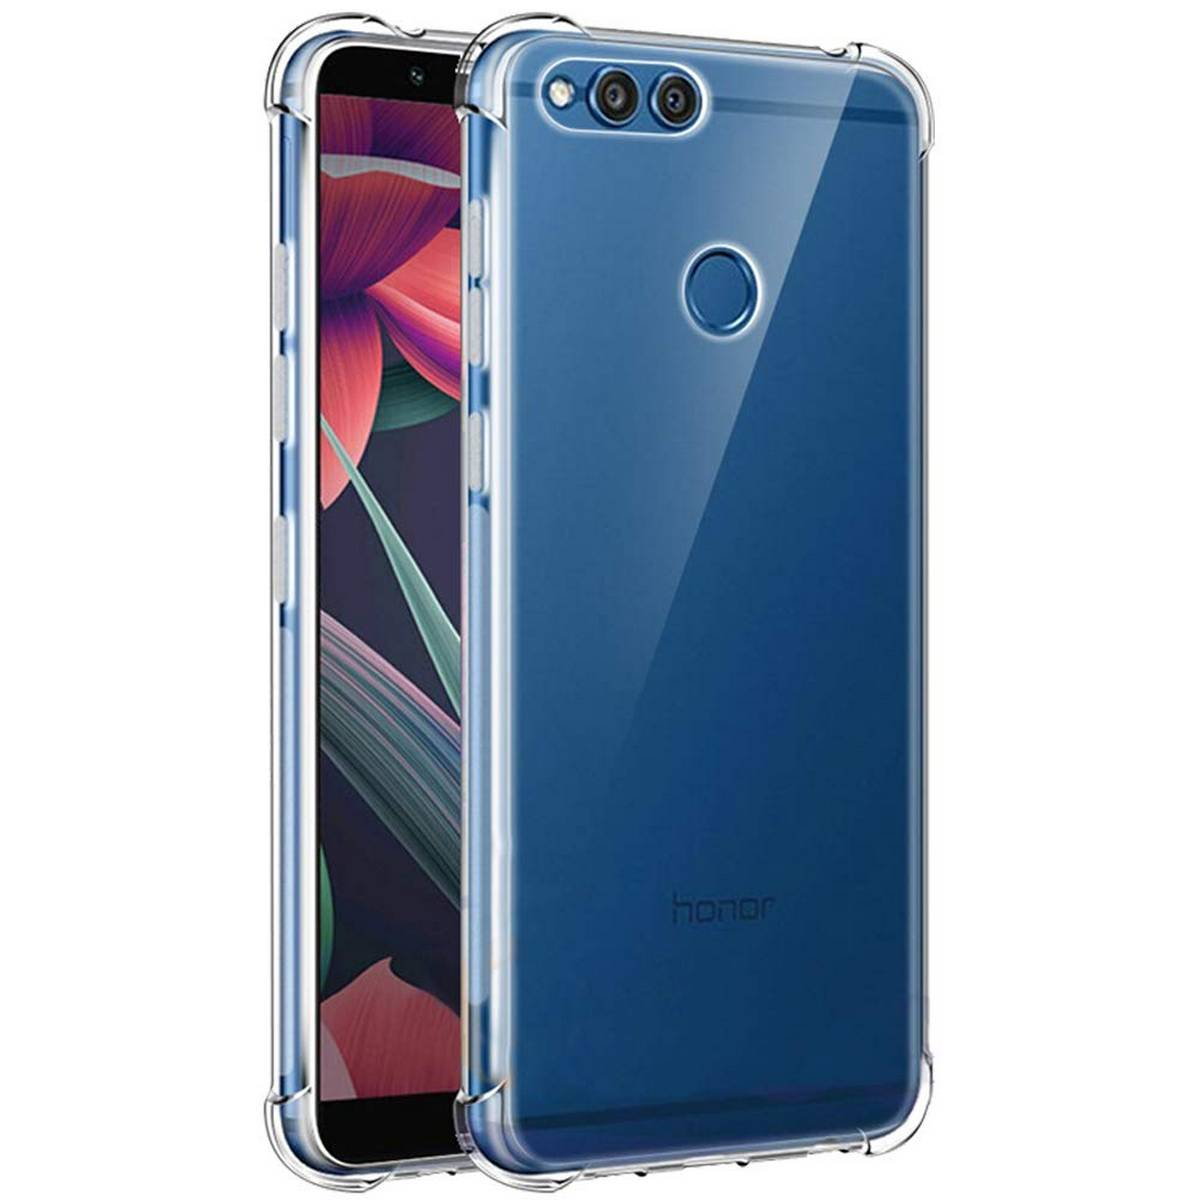 Huawei Honor 7x Shockproof Armor Case Transparent Back Cover